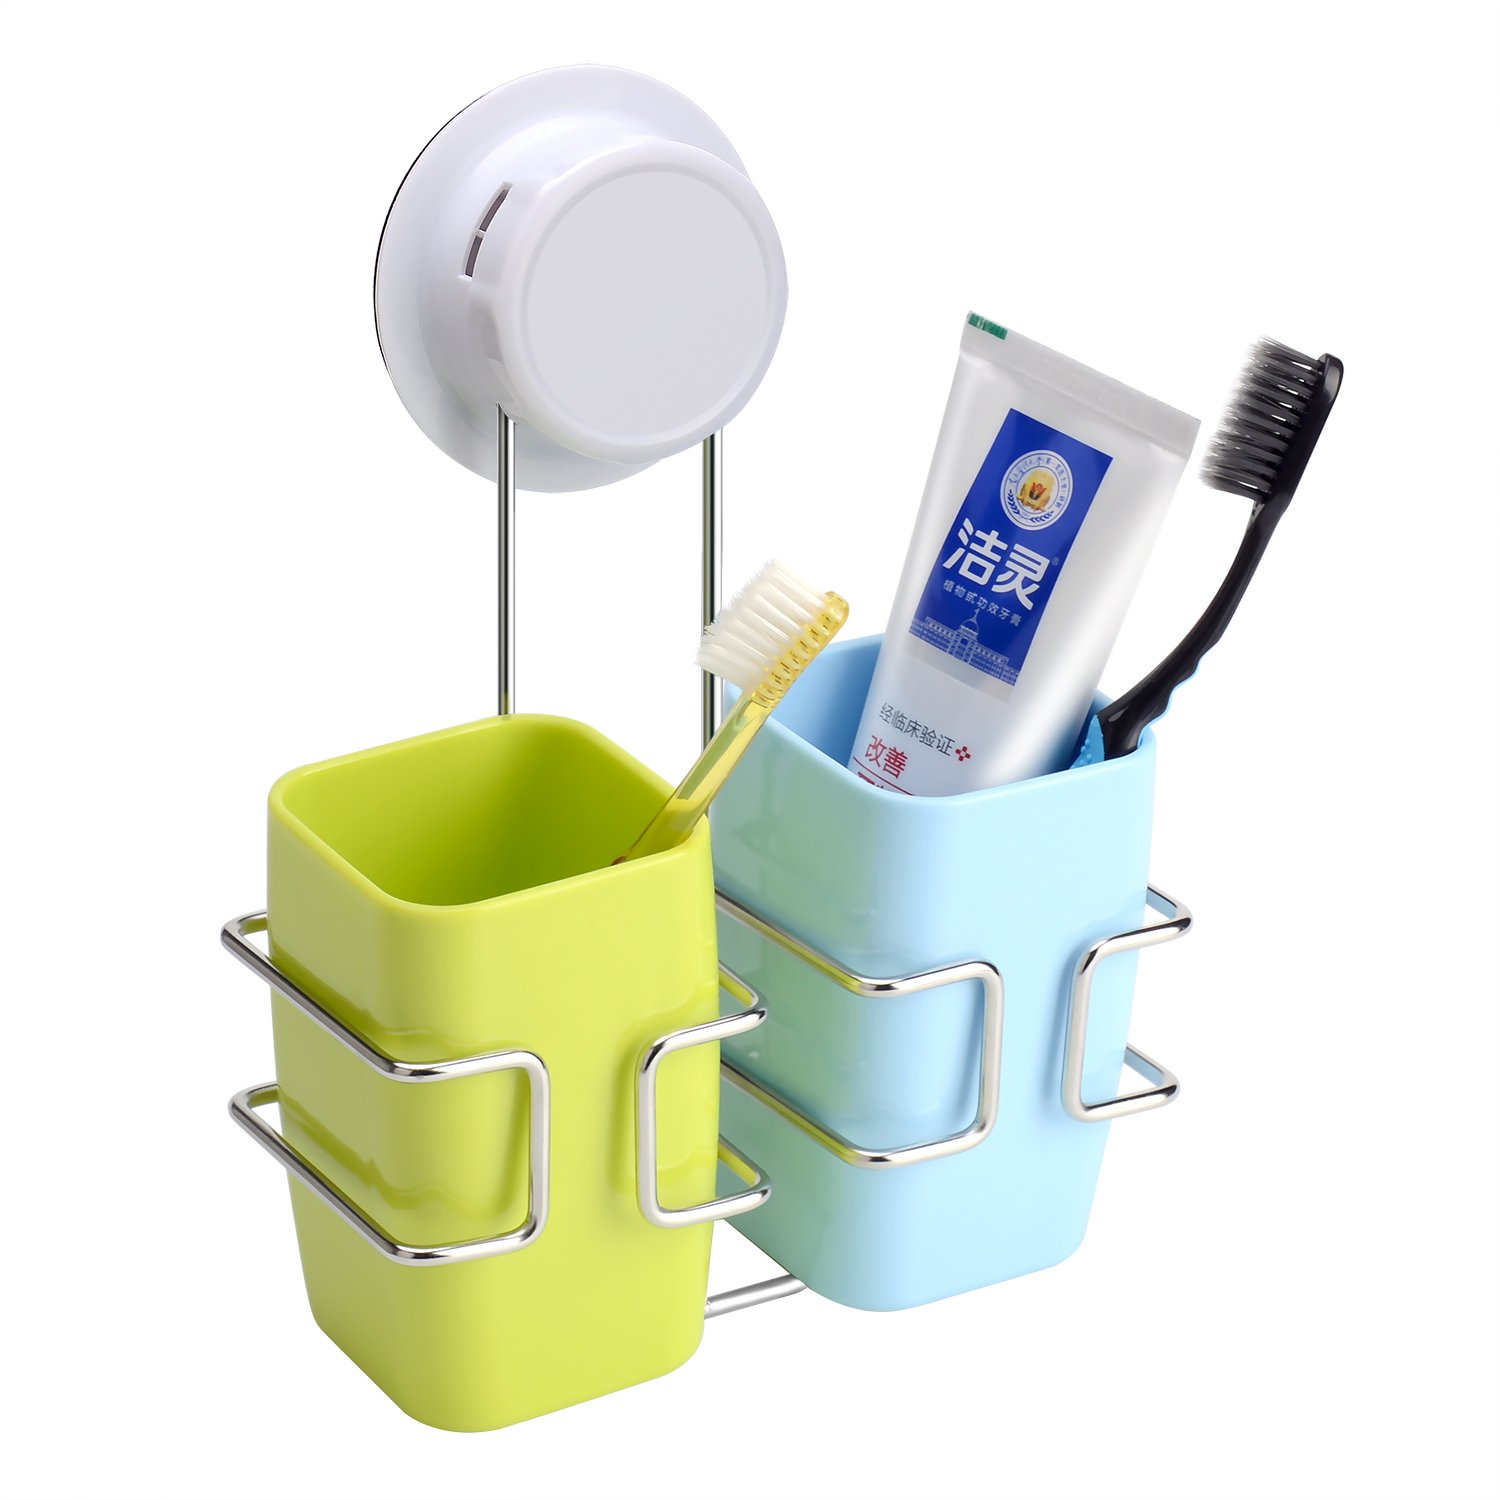 Toothbrush Holder Wall Mounted Stainless Steel Bathroom Holder Set Modern Large Capacity Toothpate Stand - Couple's Design image